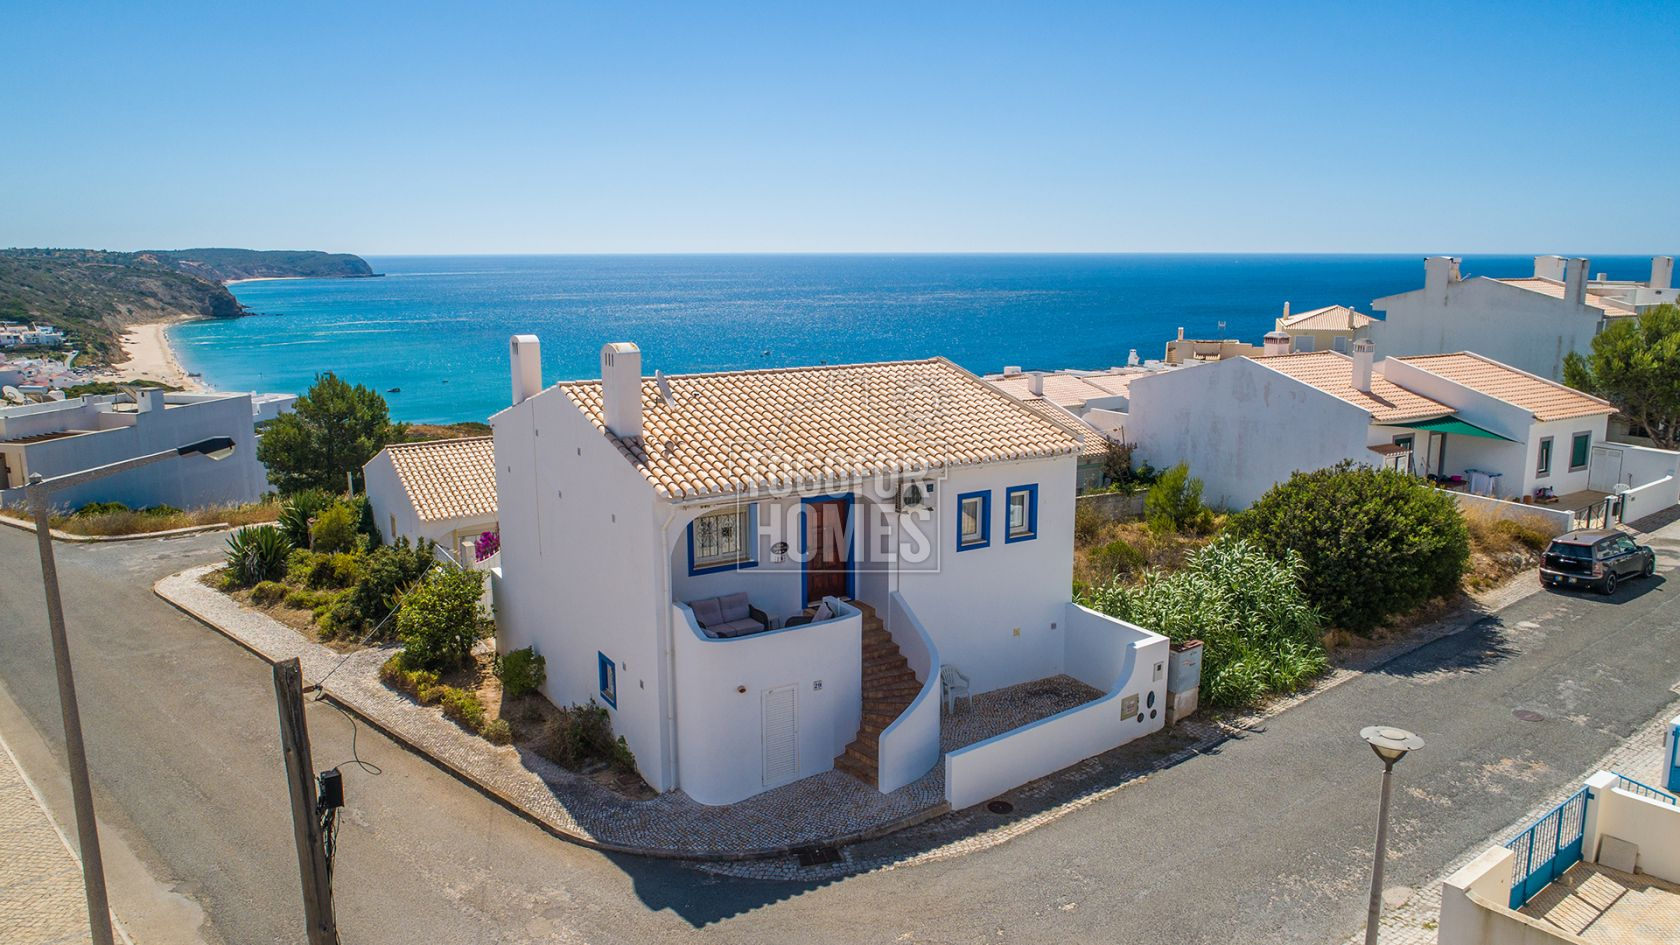 3 bedroom house garden with amazing uninterrupted sea views salema west algarve lg1148 togofor homes